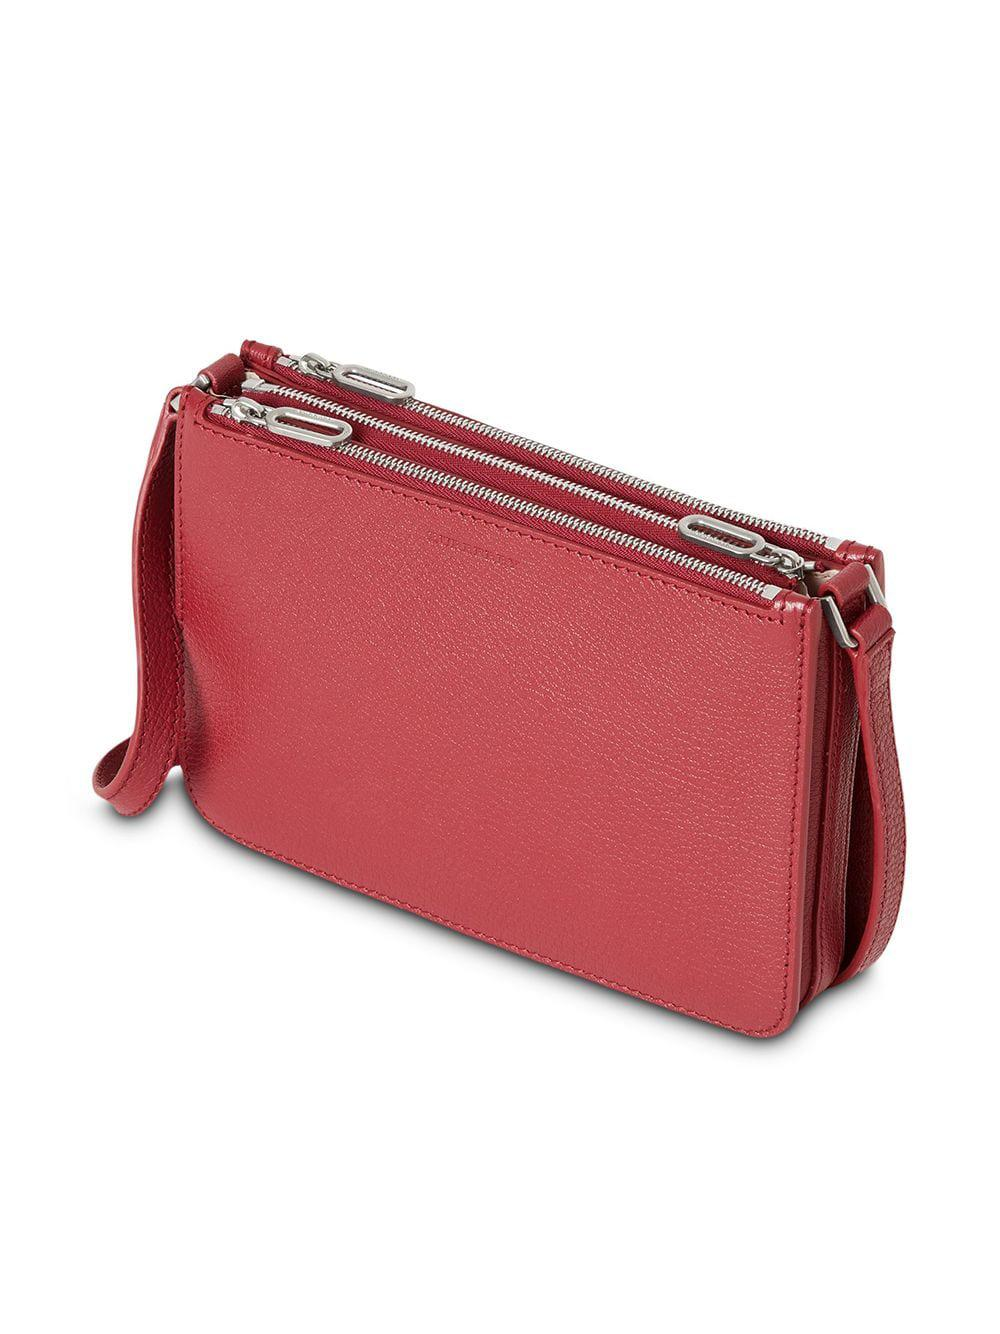 46827a26bee4 Burberry - Red Triple Zip Grainy Leather Crossbody Bag - Lyst. View  fullscreen